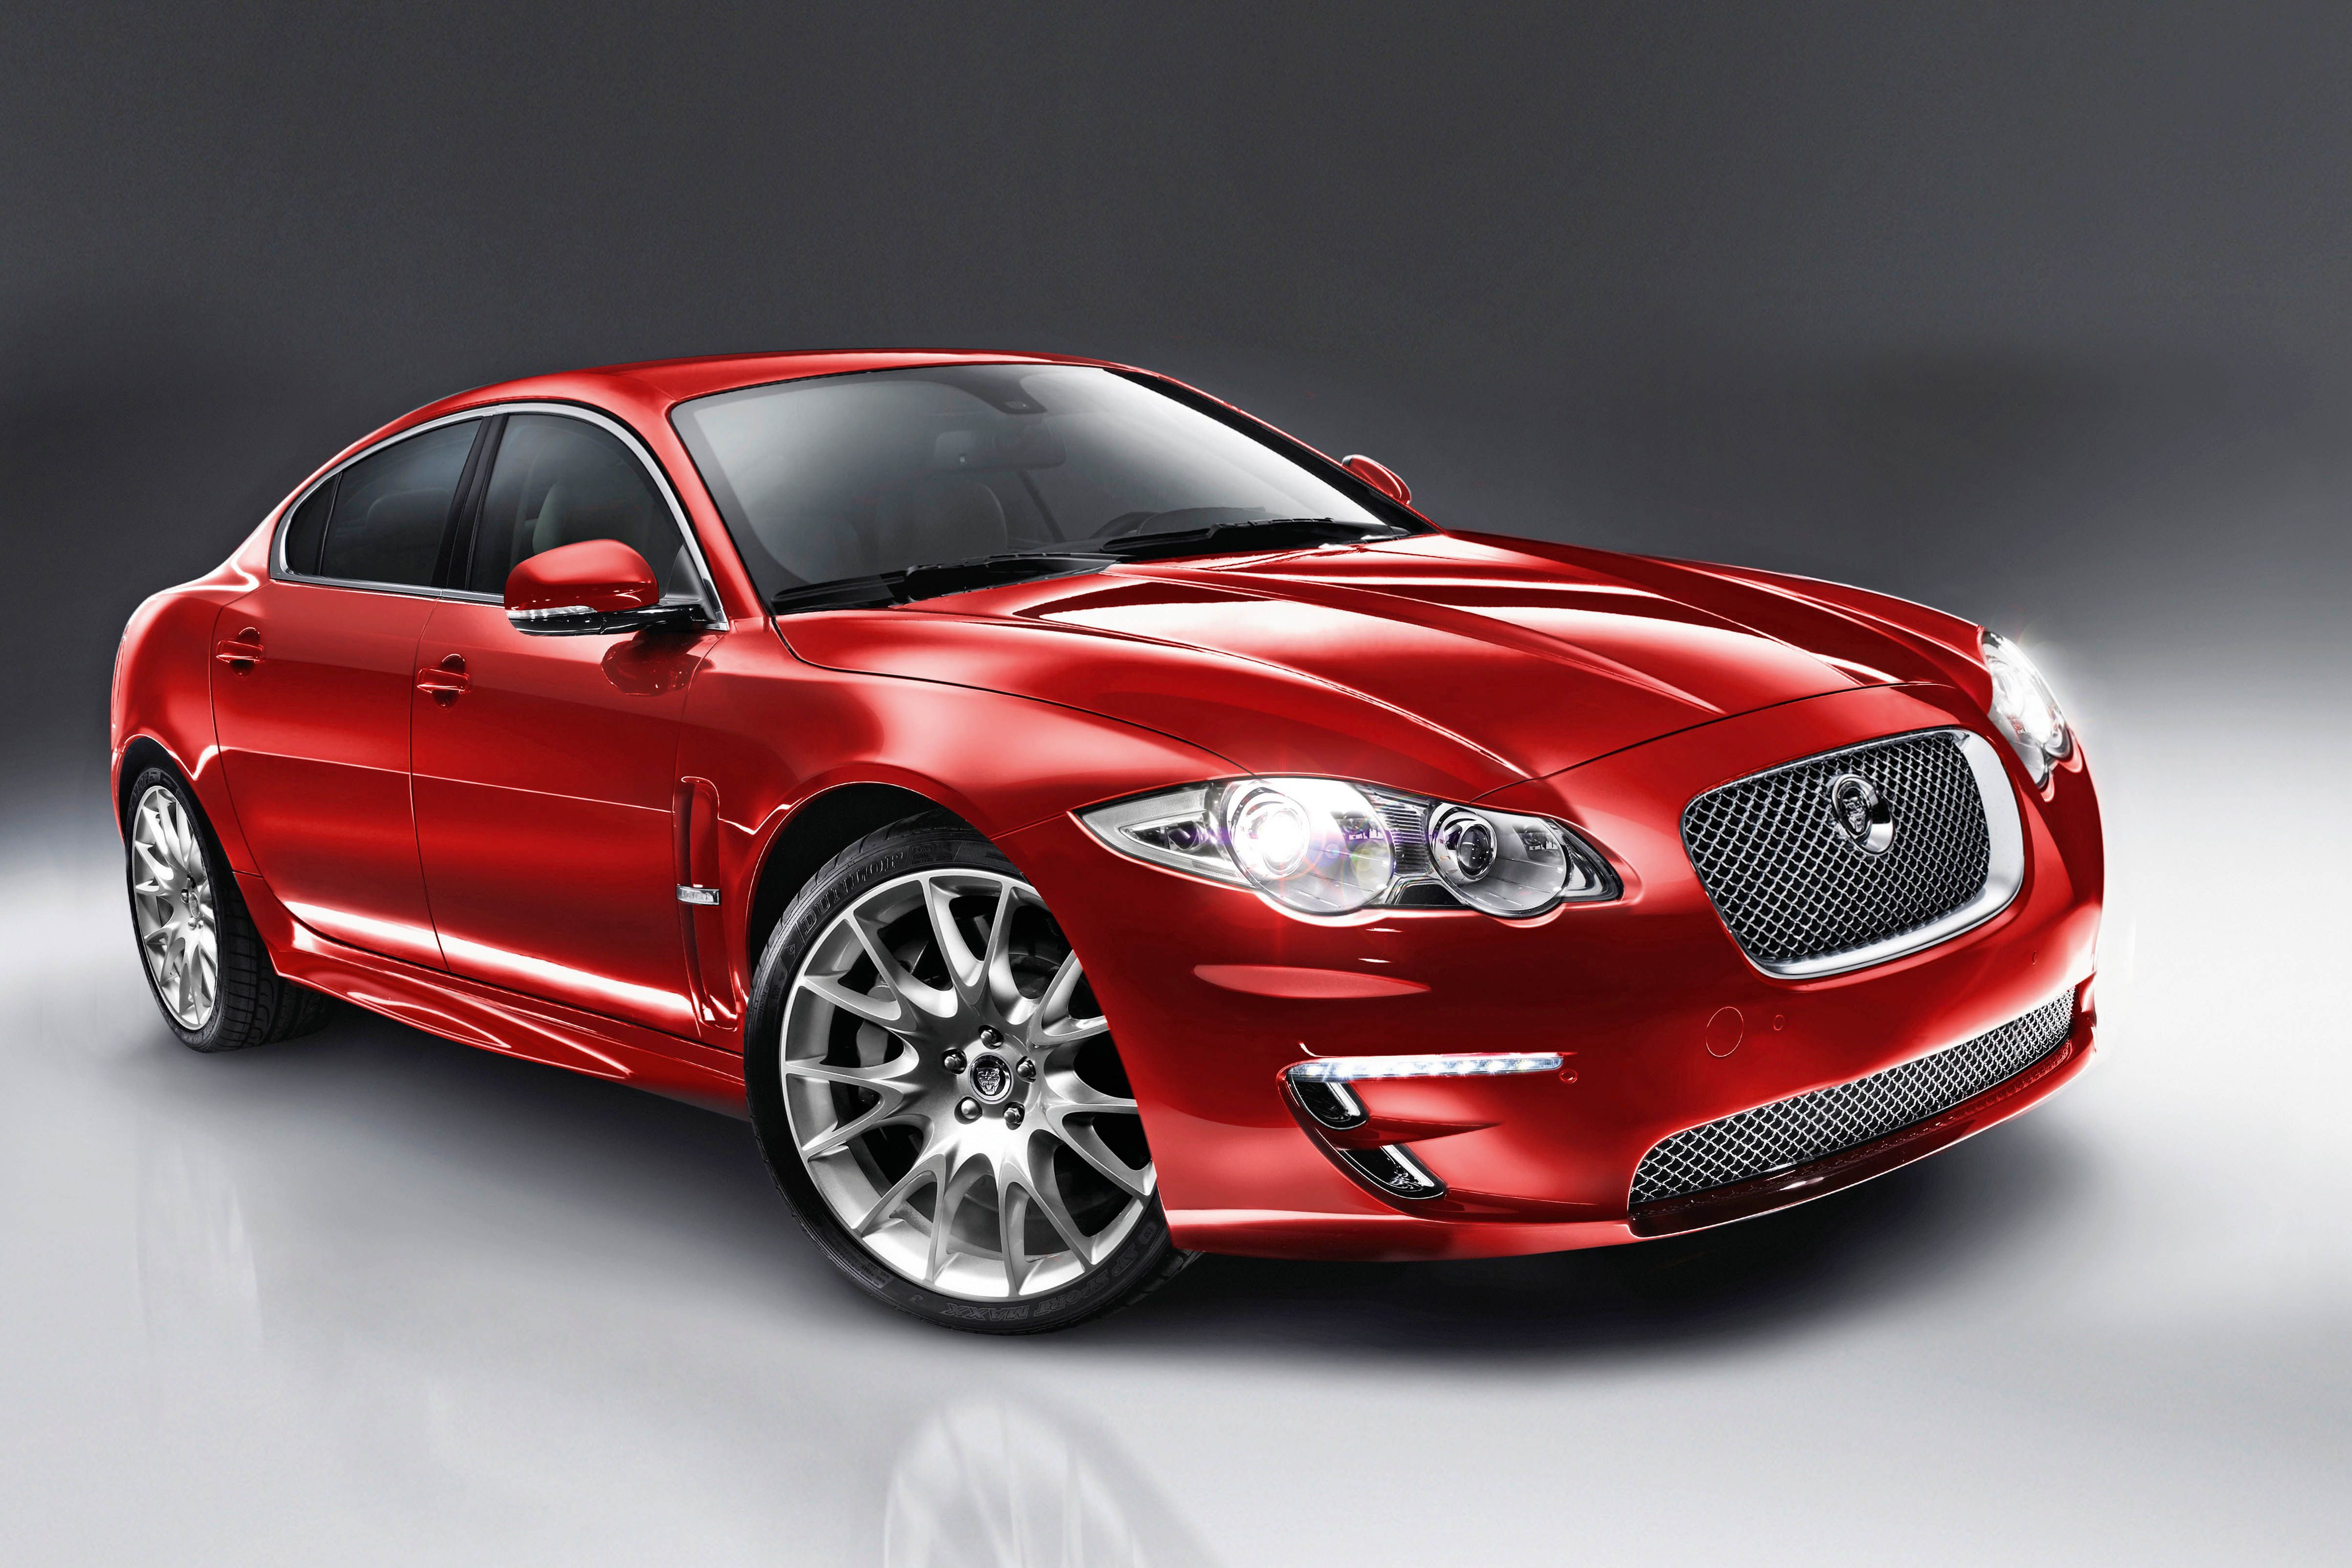 This might have to be my next car Love the Jaguar brand sleek